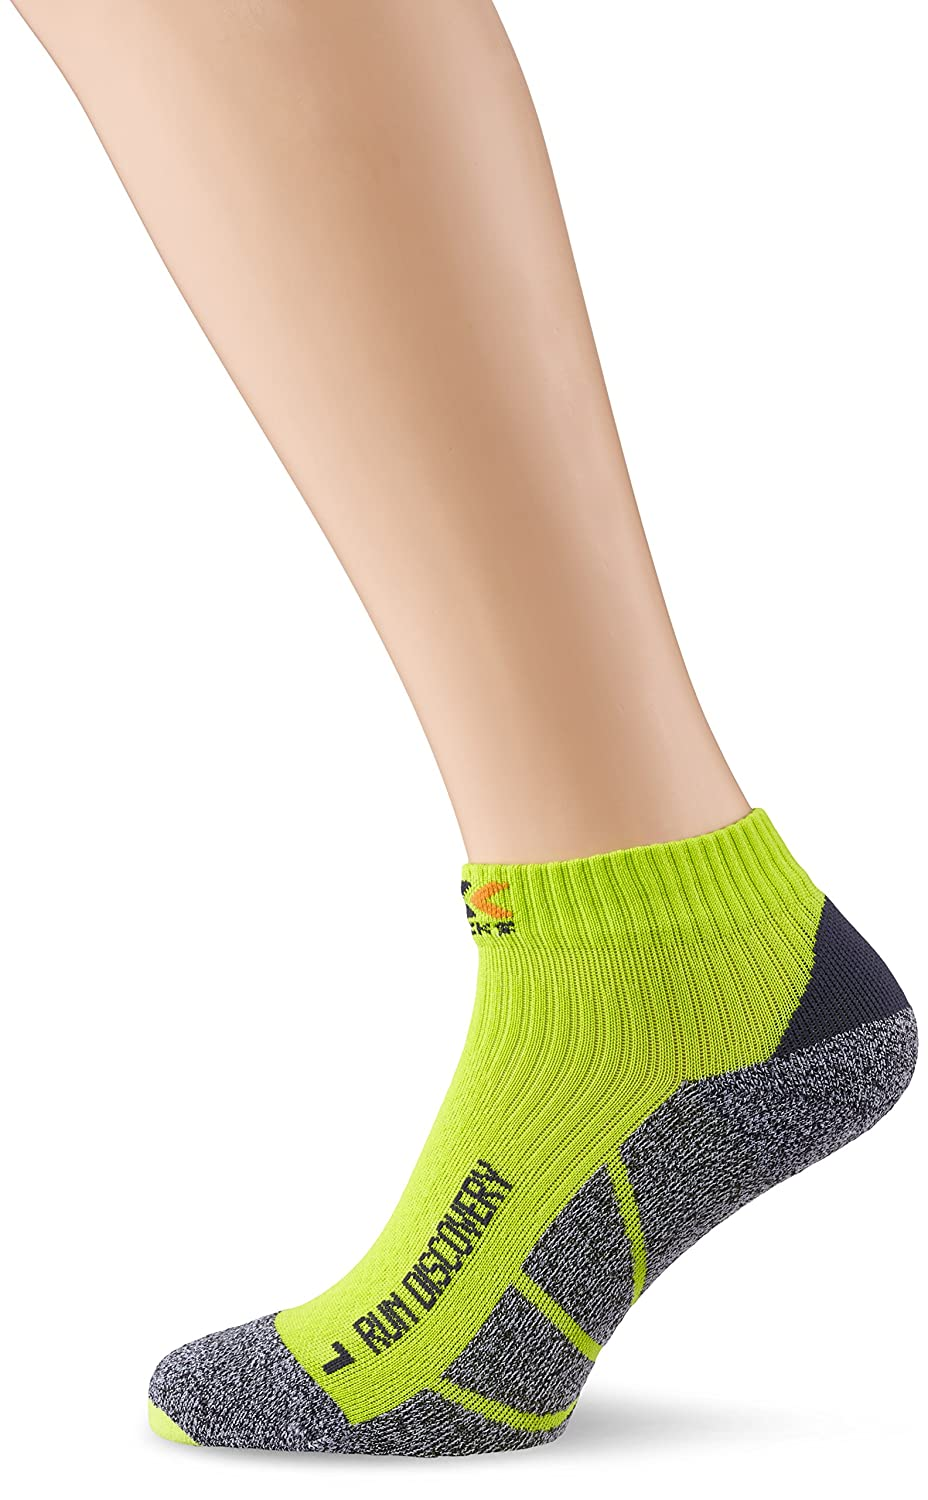 X-Socks rodmann calcetines de Run New Discovery: Amazon.es: Deportes y aire libre